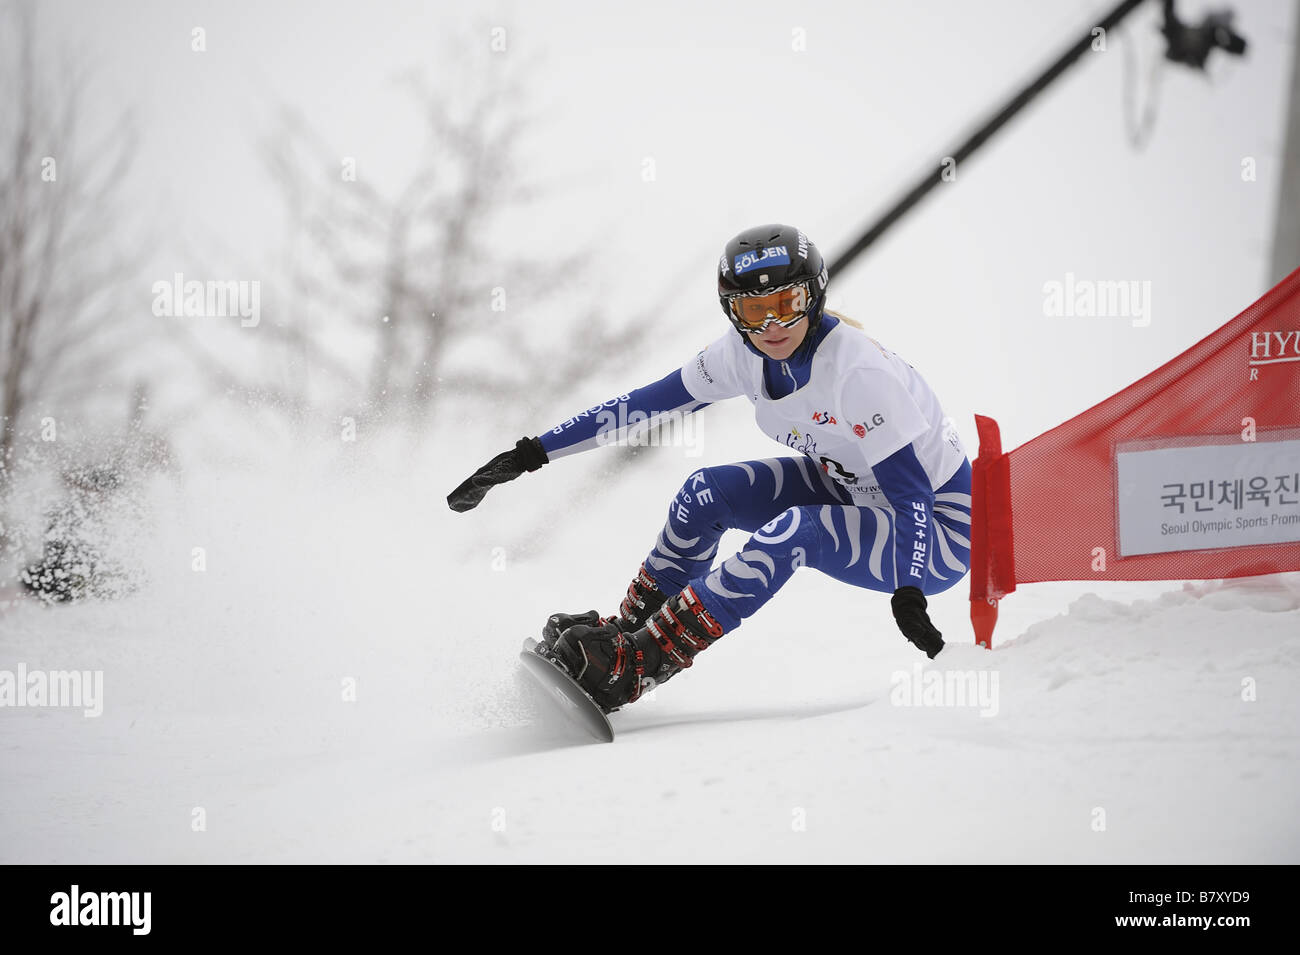 Amelie Kober GER JANUARY 21 2009 Snowboarding Amelie Kober of Germany competes during the FIS Snowboard World Championships - Stock Image